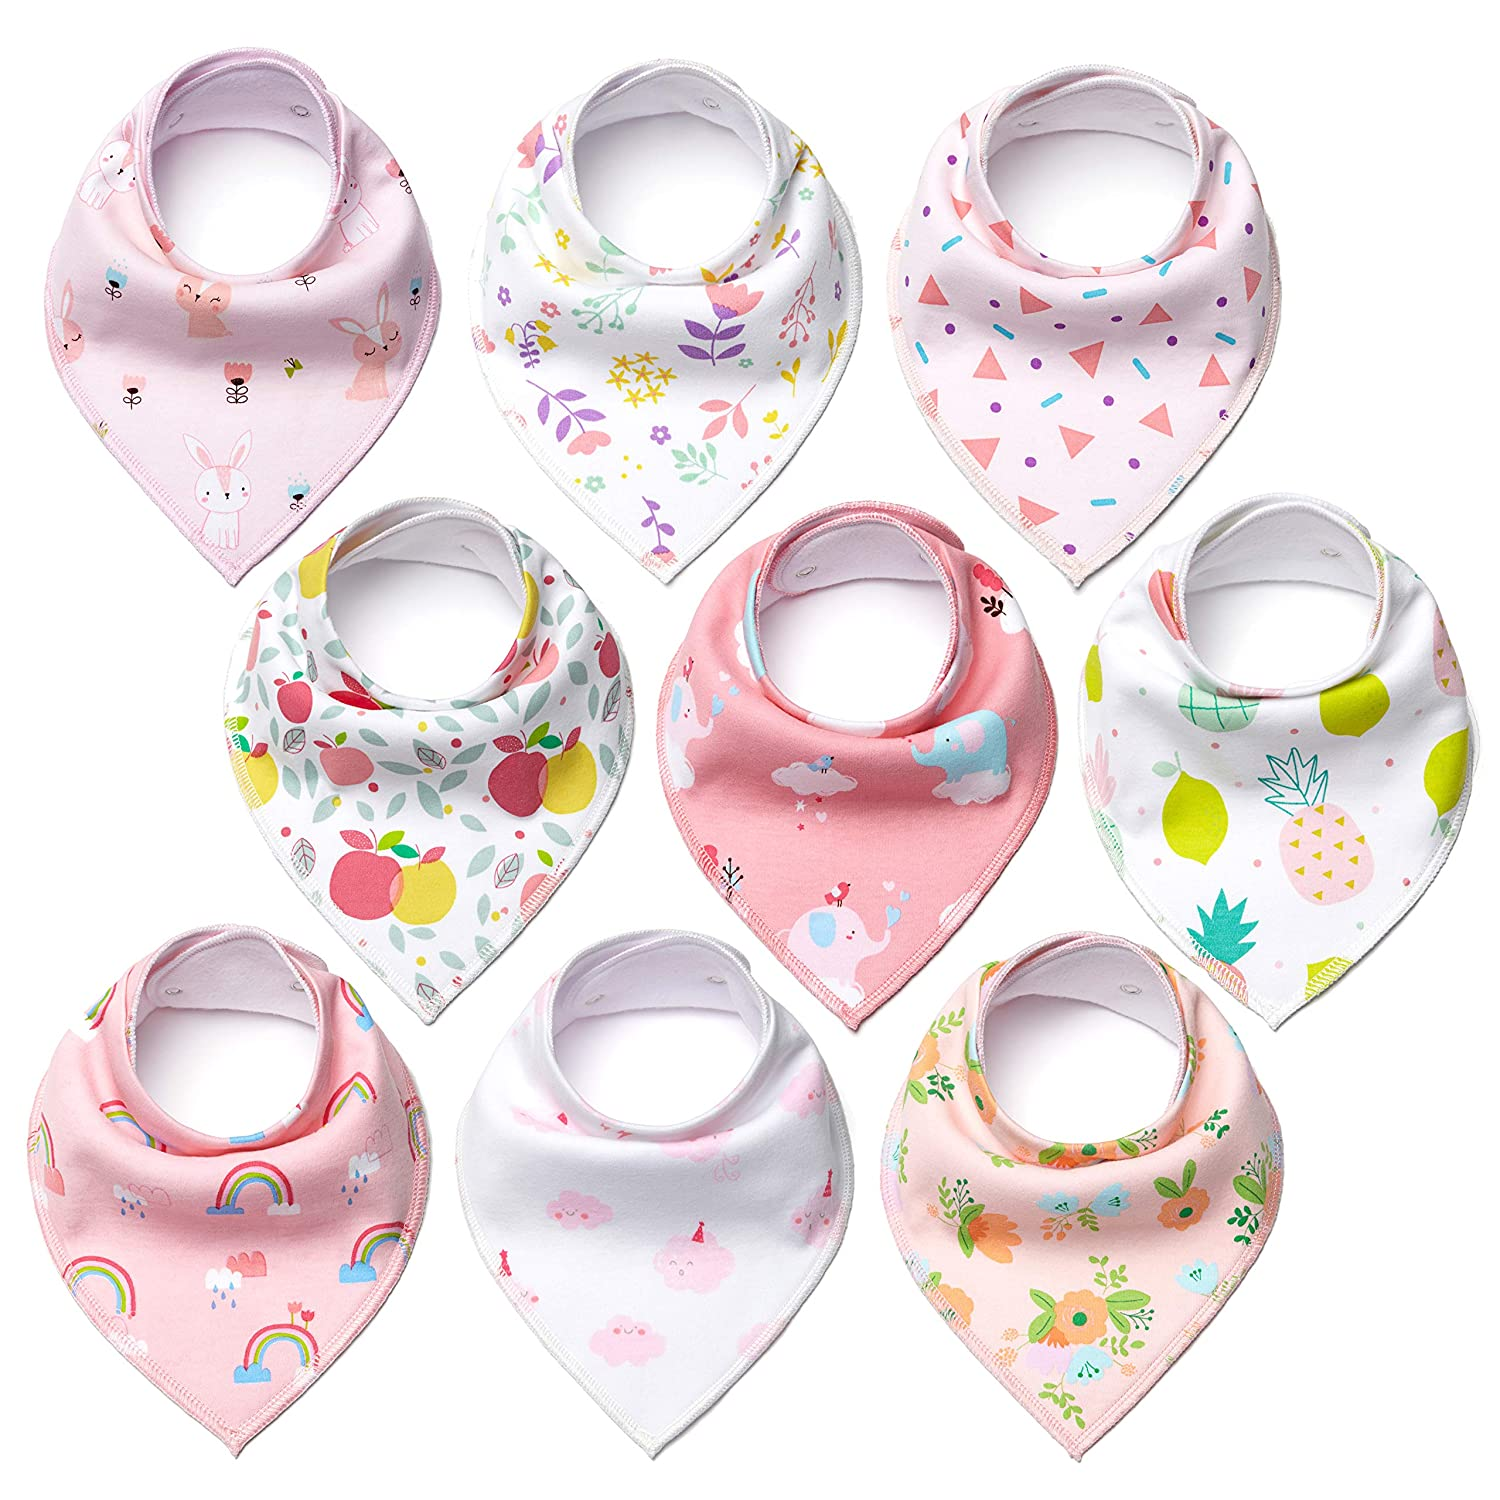 HJH Baby Bandana Bibs for Girls (9-Pack) Cute Pink Colors and Graphics | Plush, Super Absorbent Cotton | Nickel-Free Adjustable Snaps | Teething, Drooling, Feeding